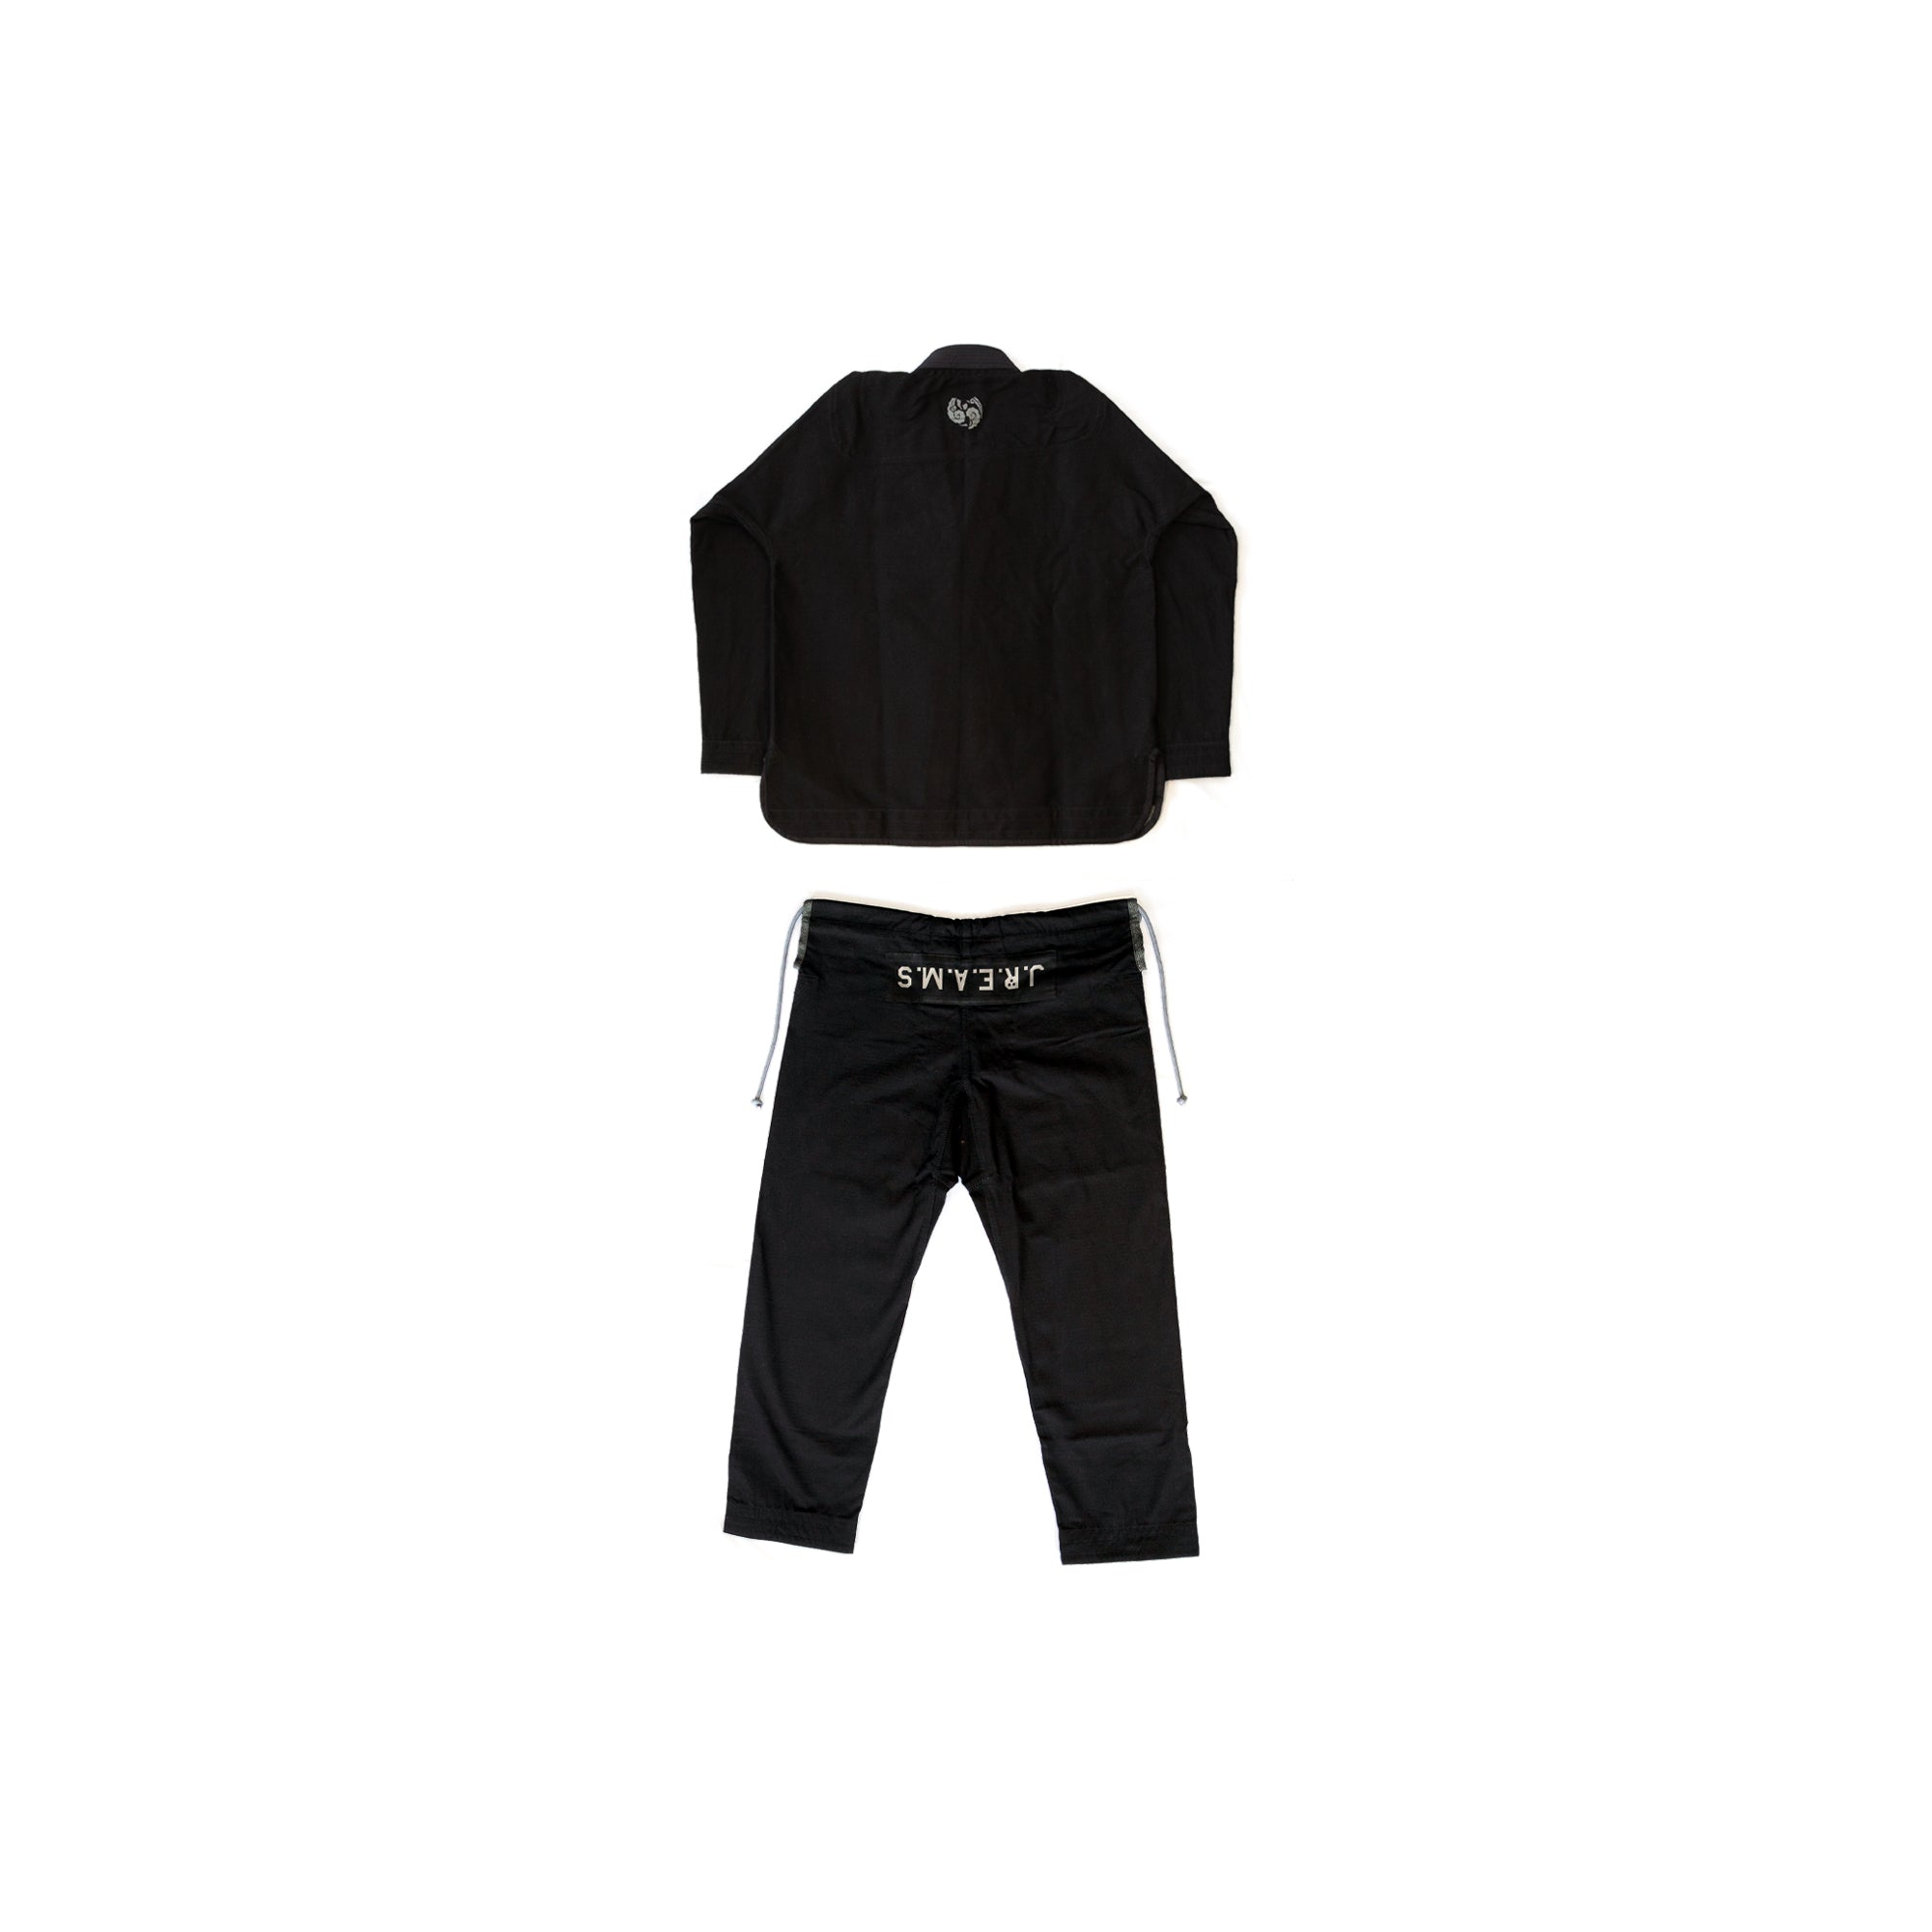 JREAM Brand Brazilian Jiu Jitsu Gi in Black